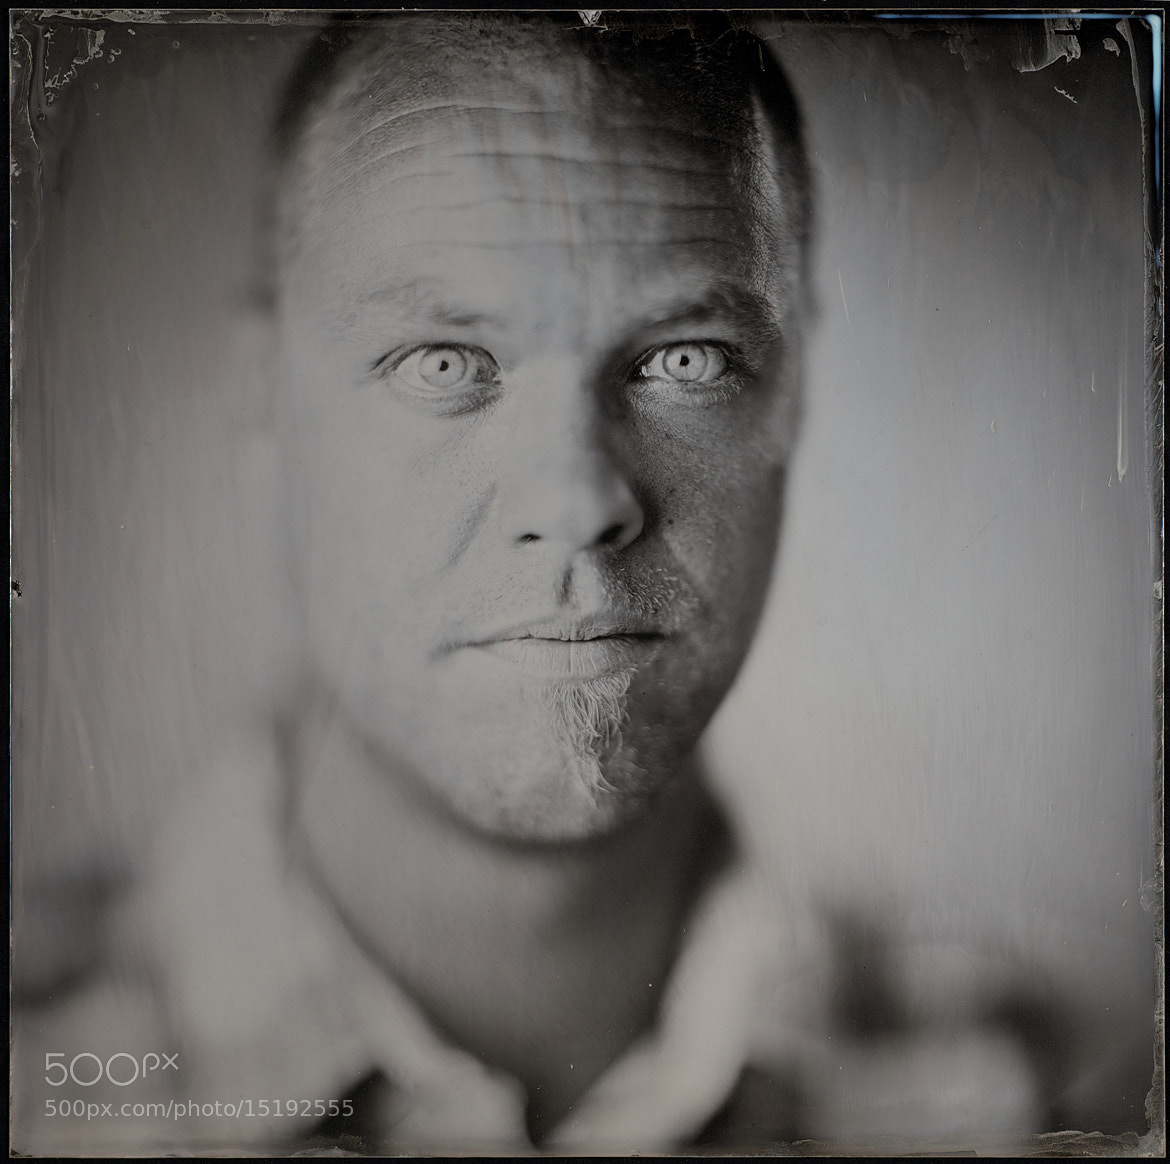 Photograph Ben 002 by wetplate studio on 500px